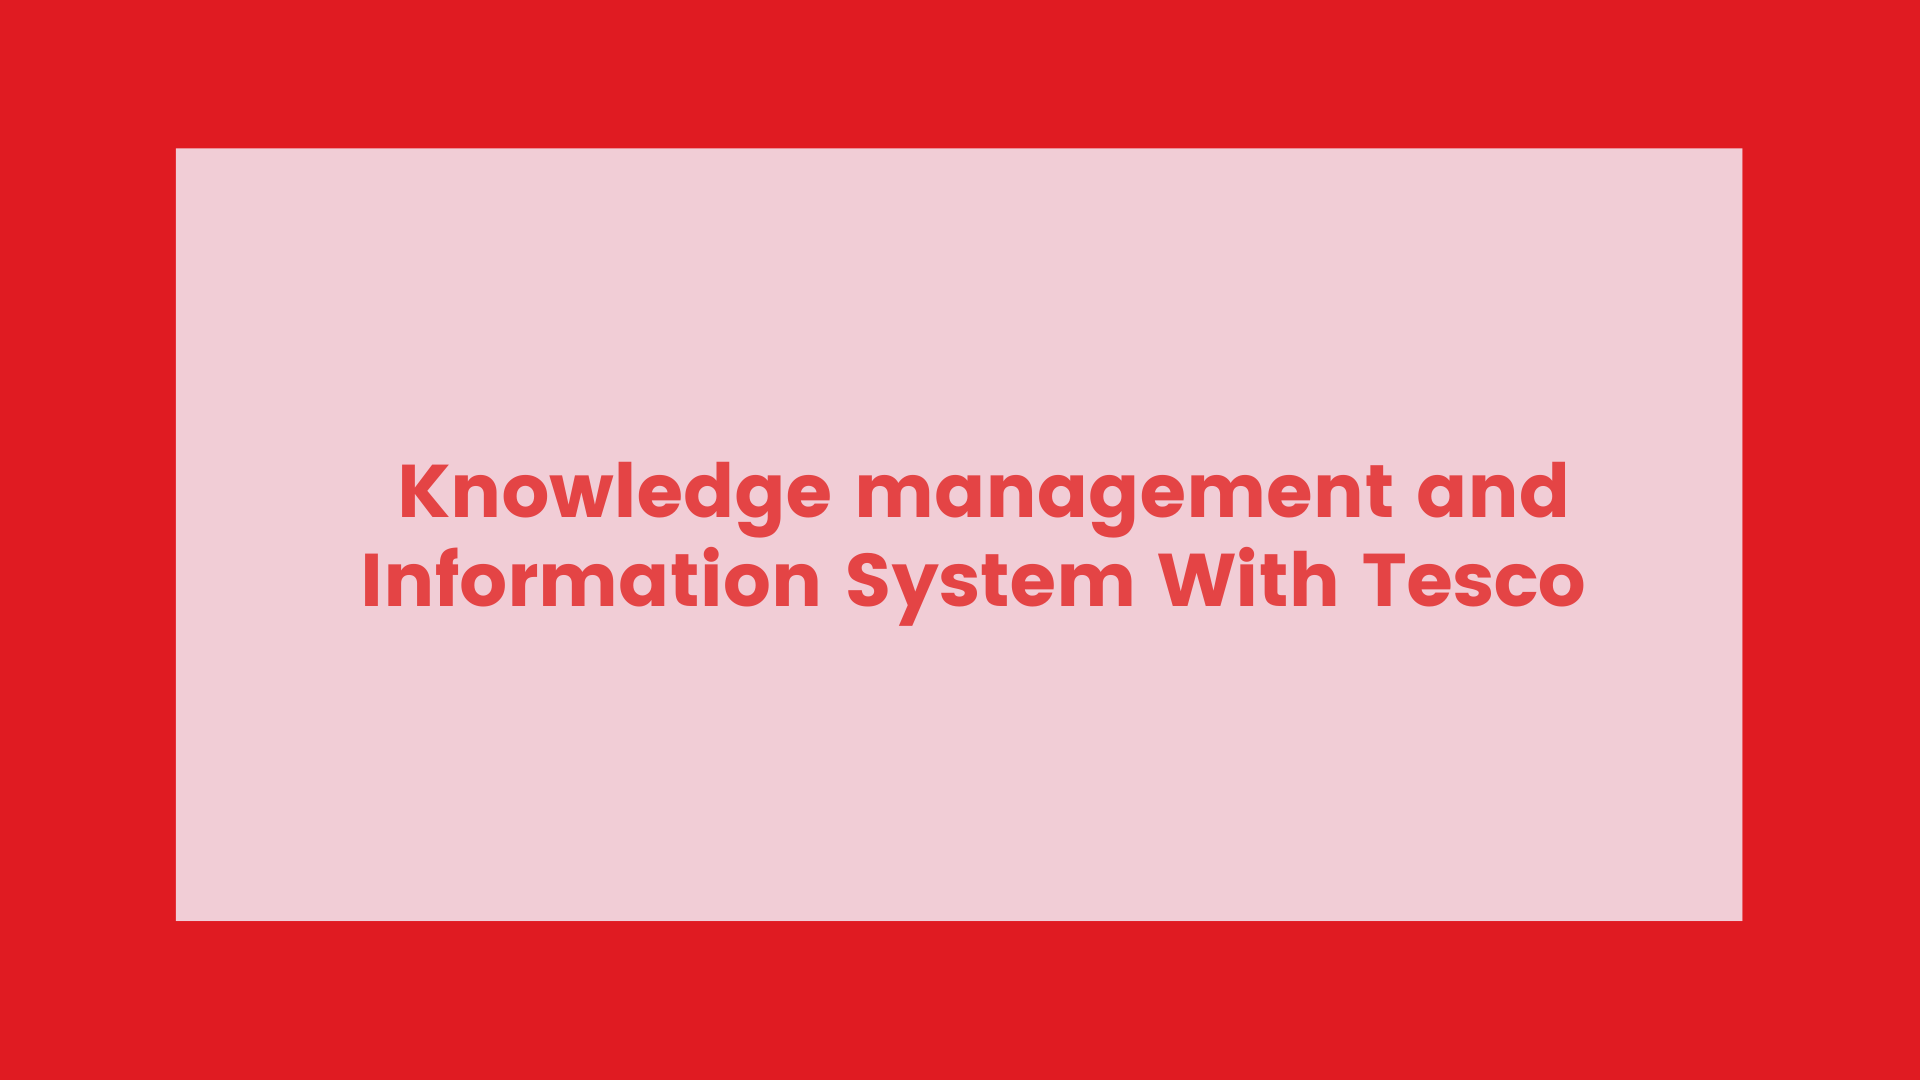 Knowledge management & Information System With Tesco